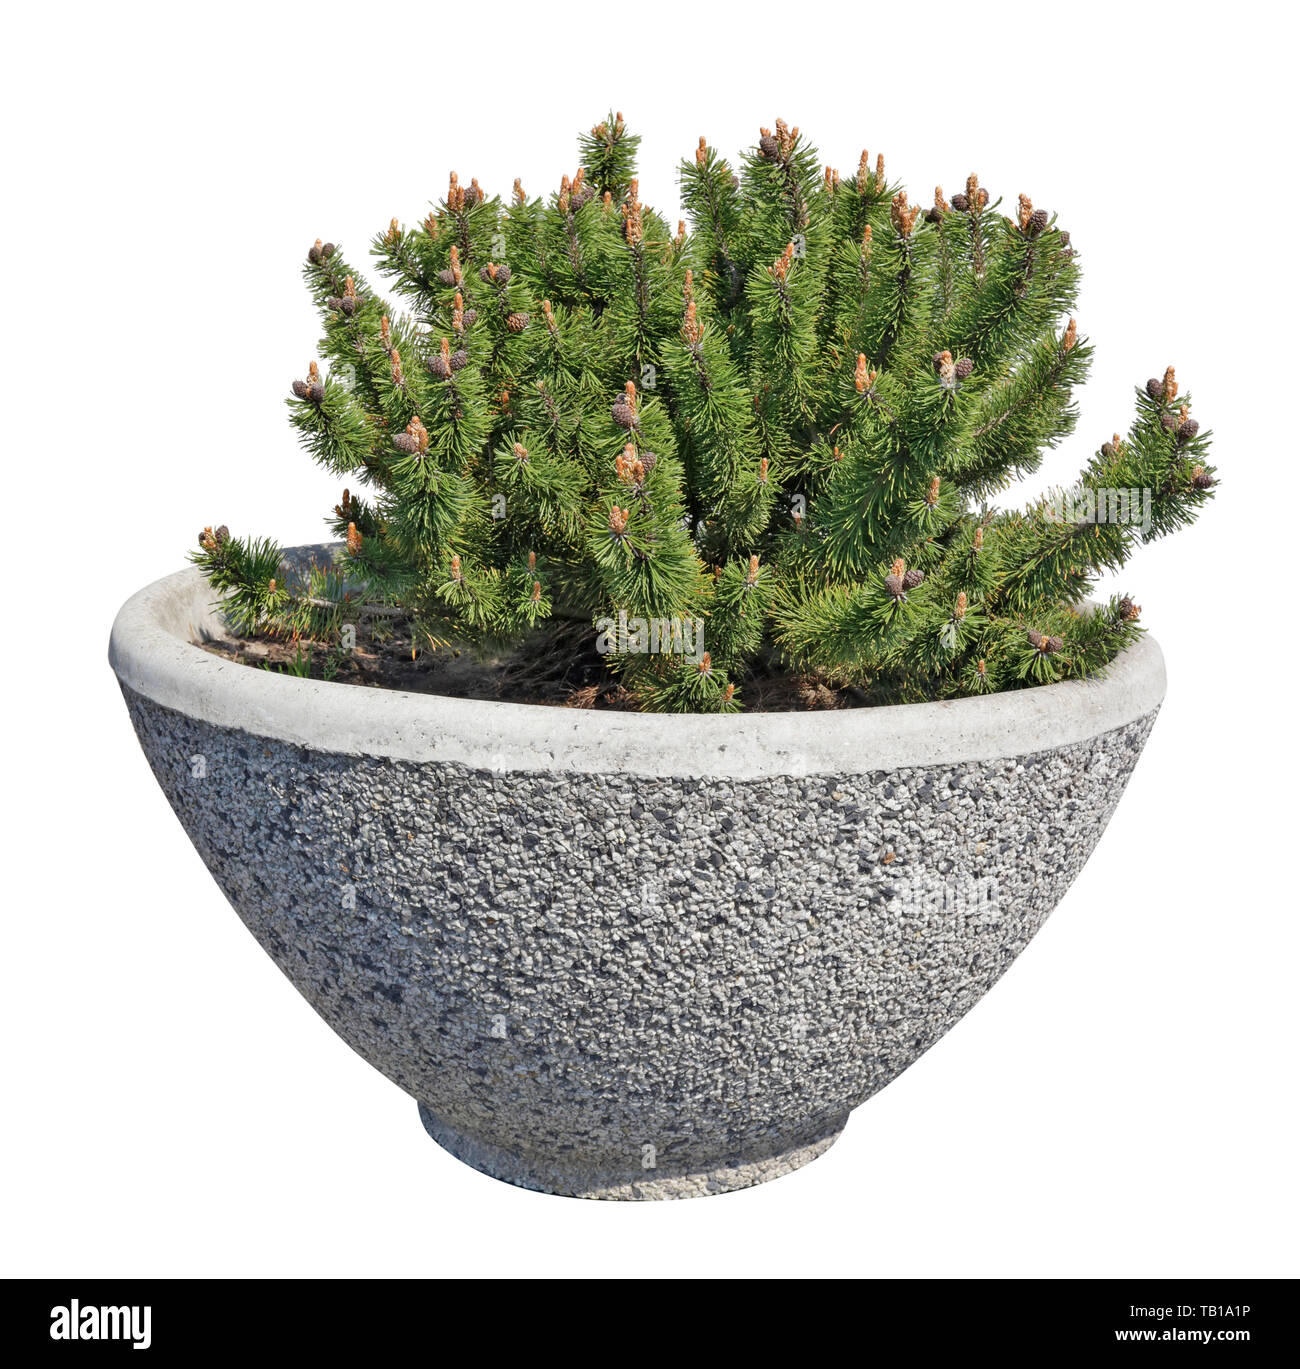 Bonsai  style pine tree grow in a ceramic pot on city street.  Isolated on white street object - Stock Image